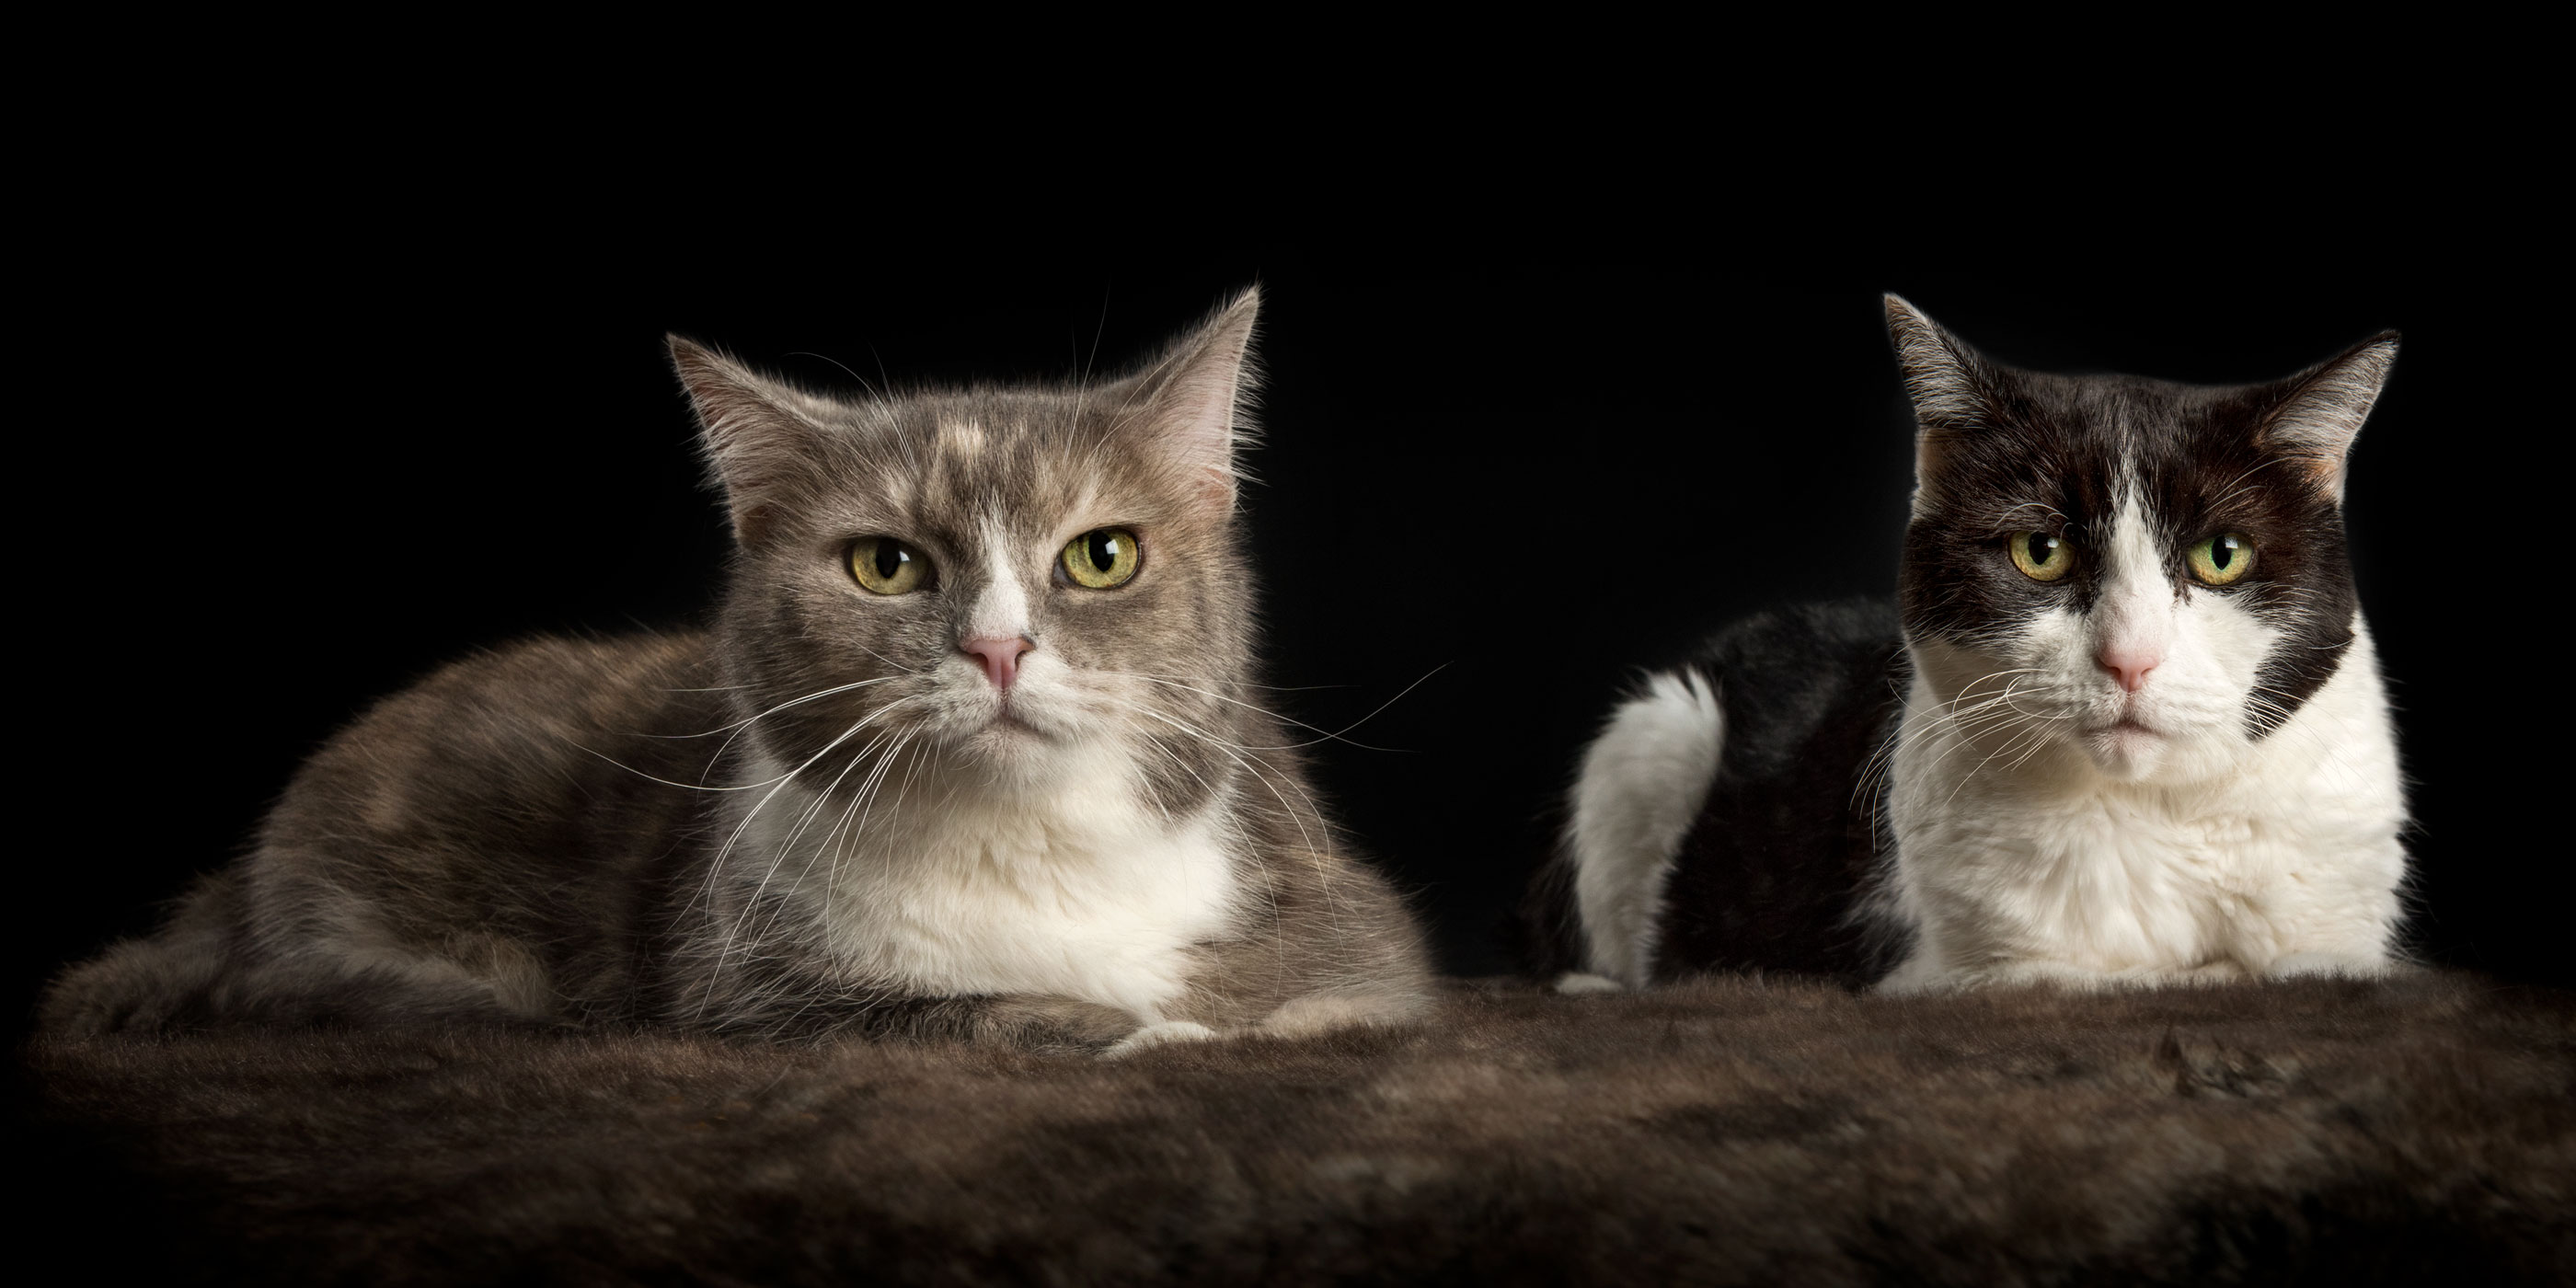 pair of domestic cats black and white and tortoiseshell